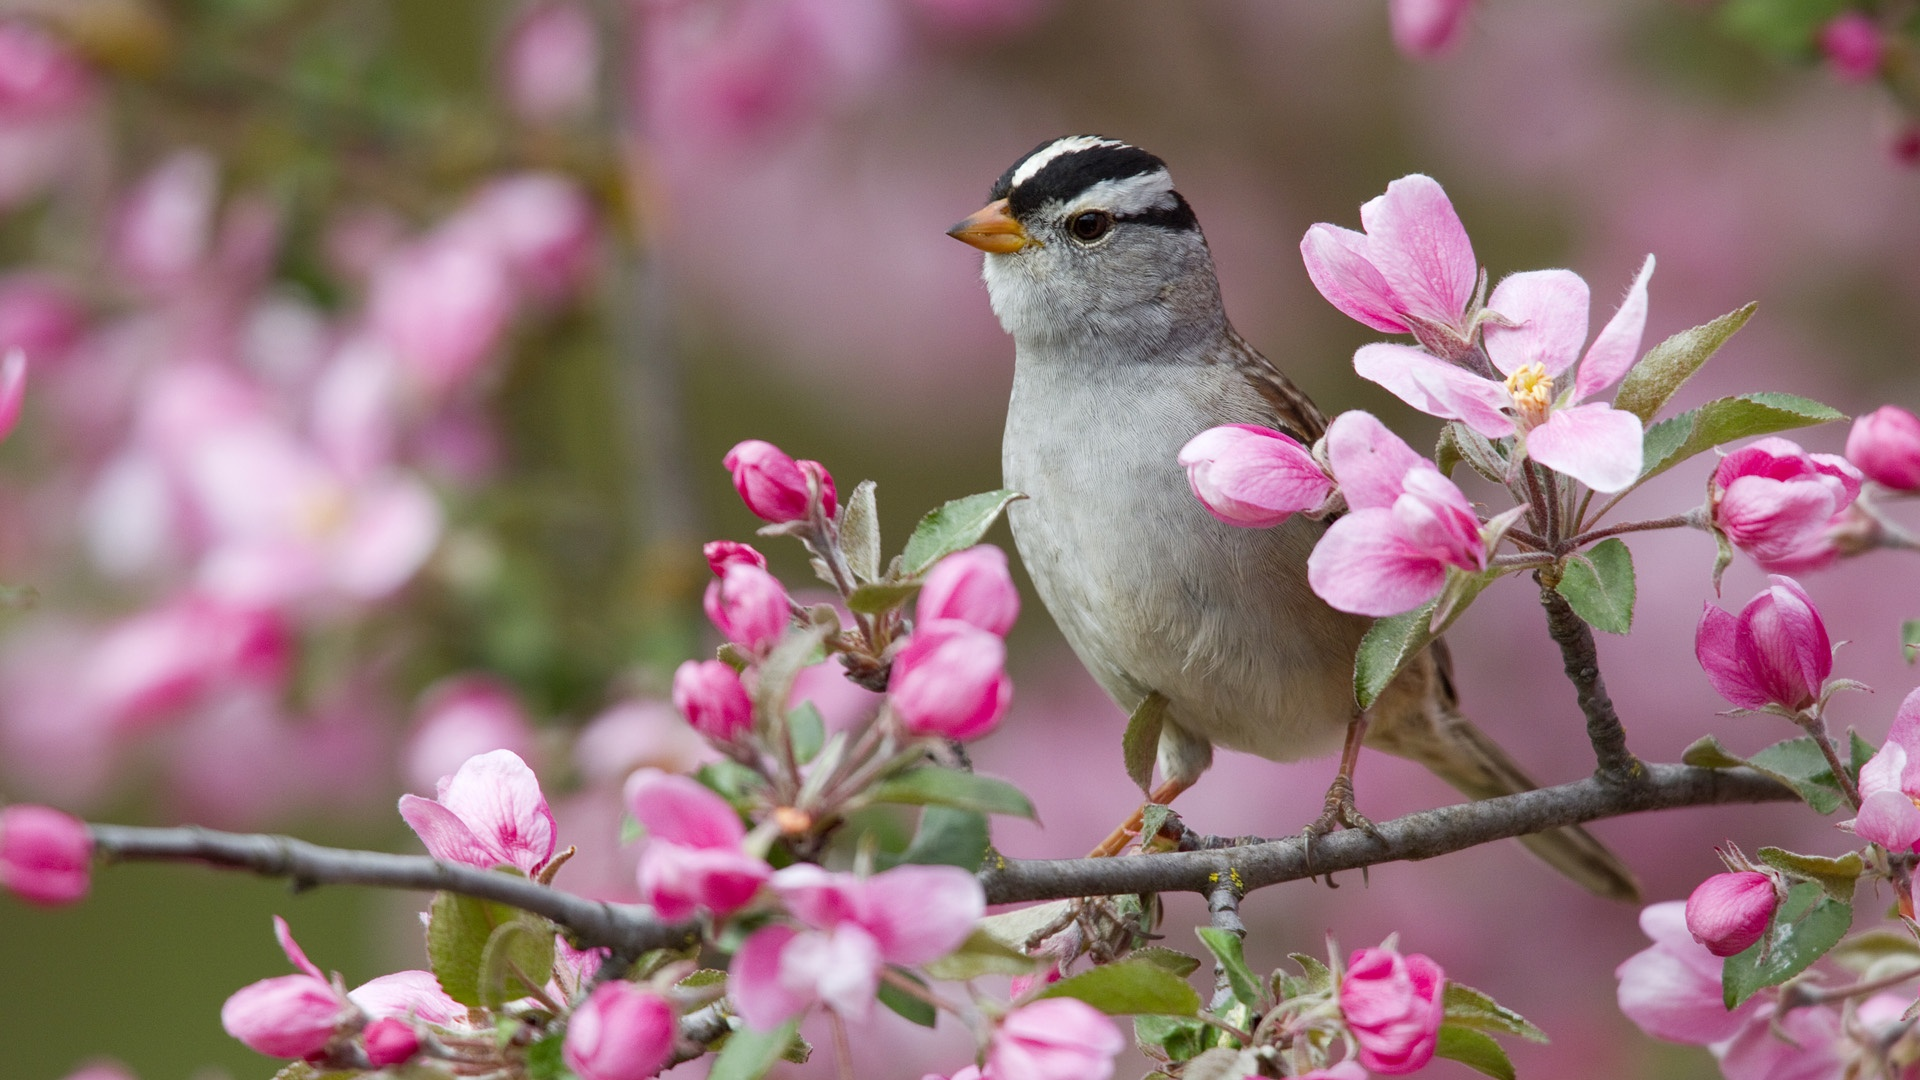 44 Wallpaper Birds And Flowers On Wallpapersafari If you're in search of the best full hd flowers wallpapers, you've come to the right place. 44 wallpaper birds and flowers on